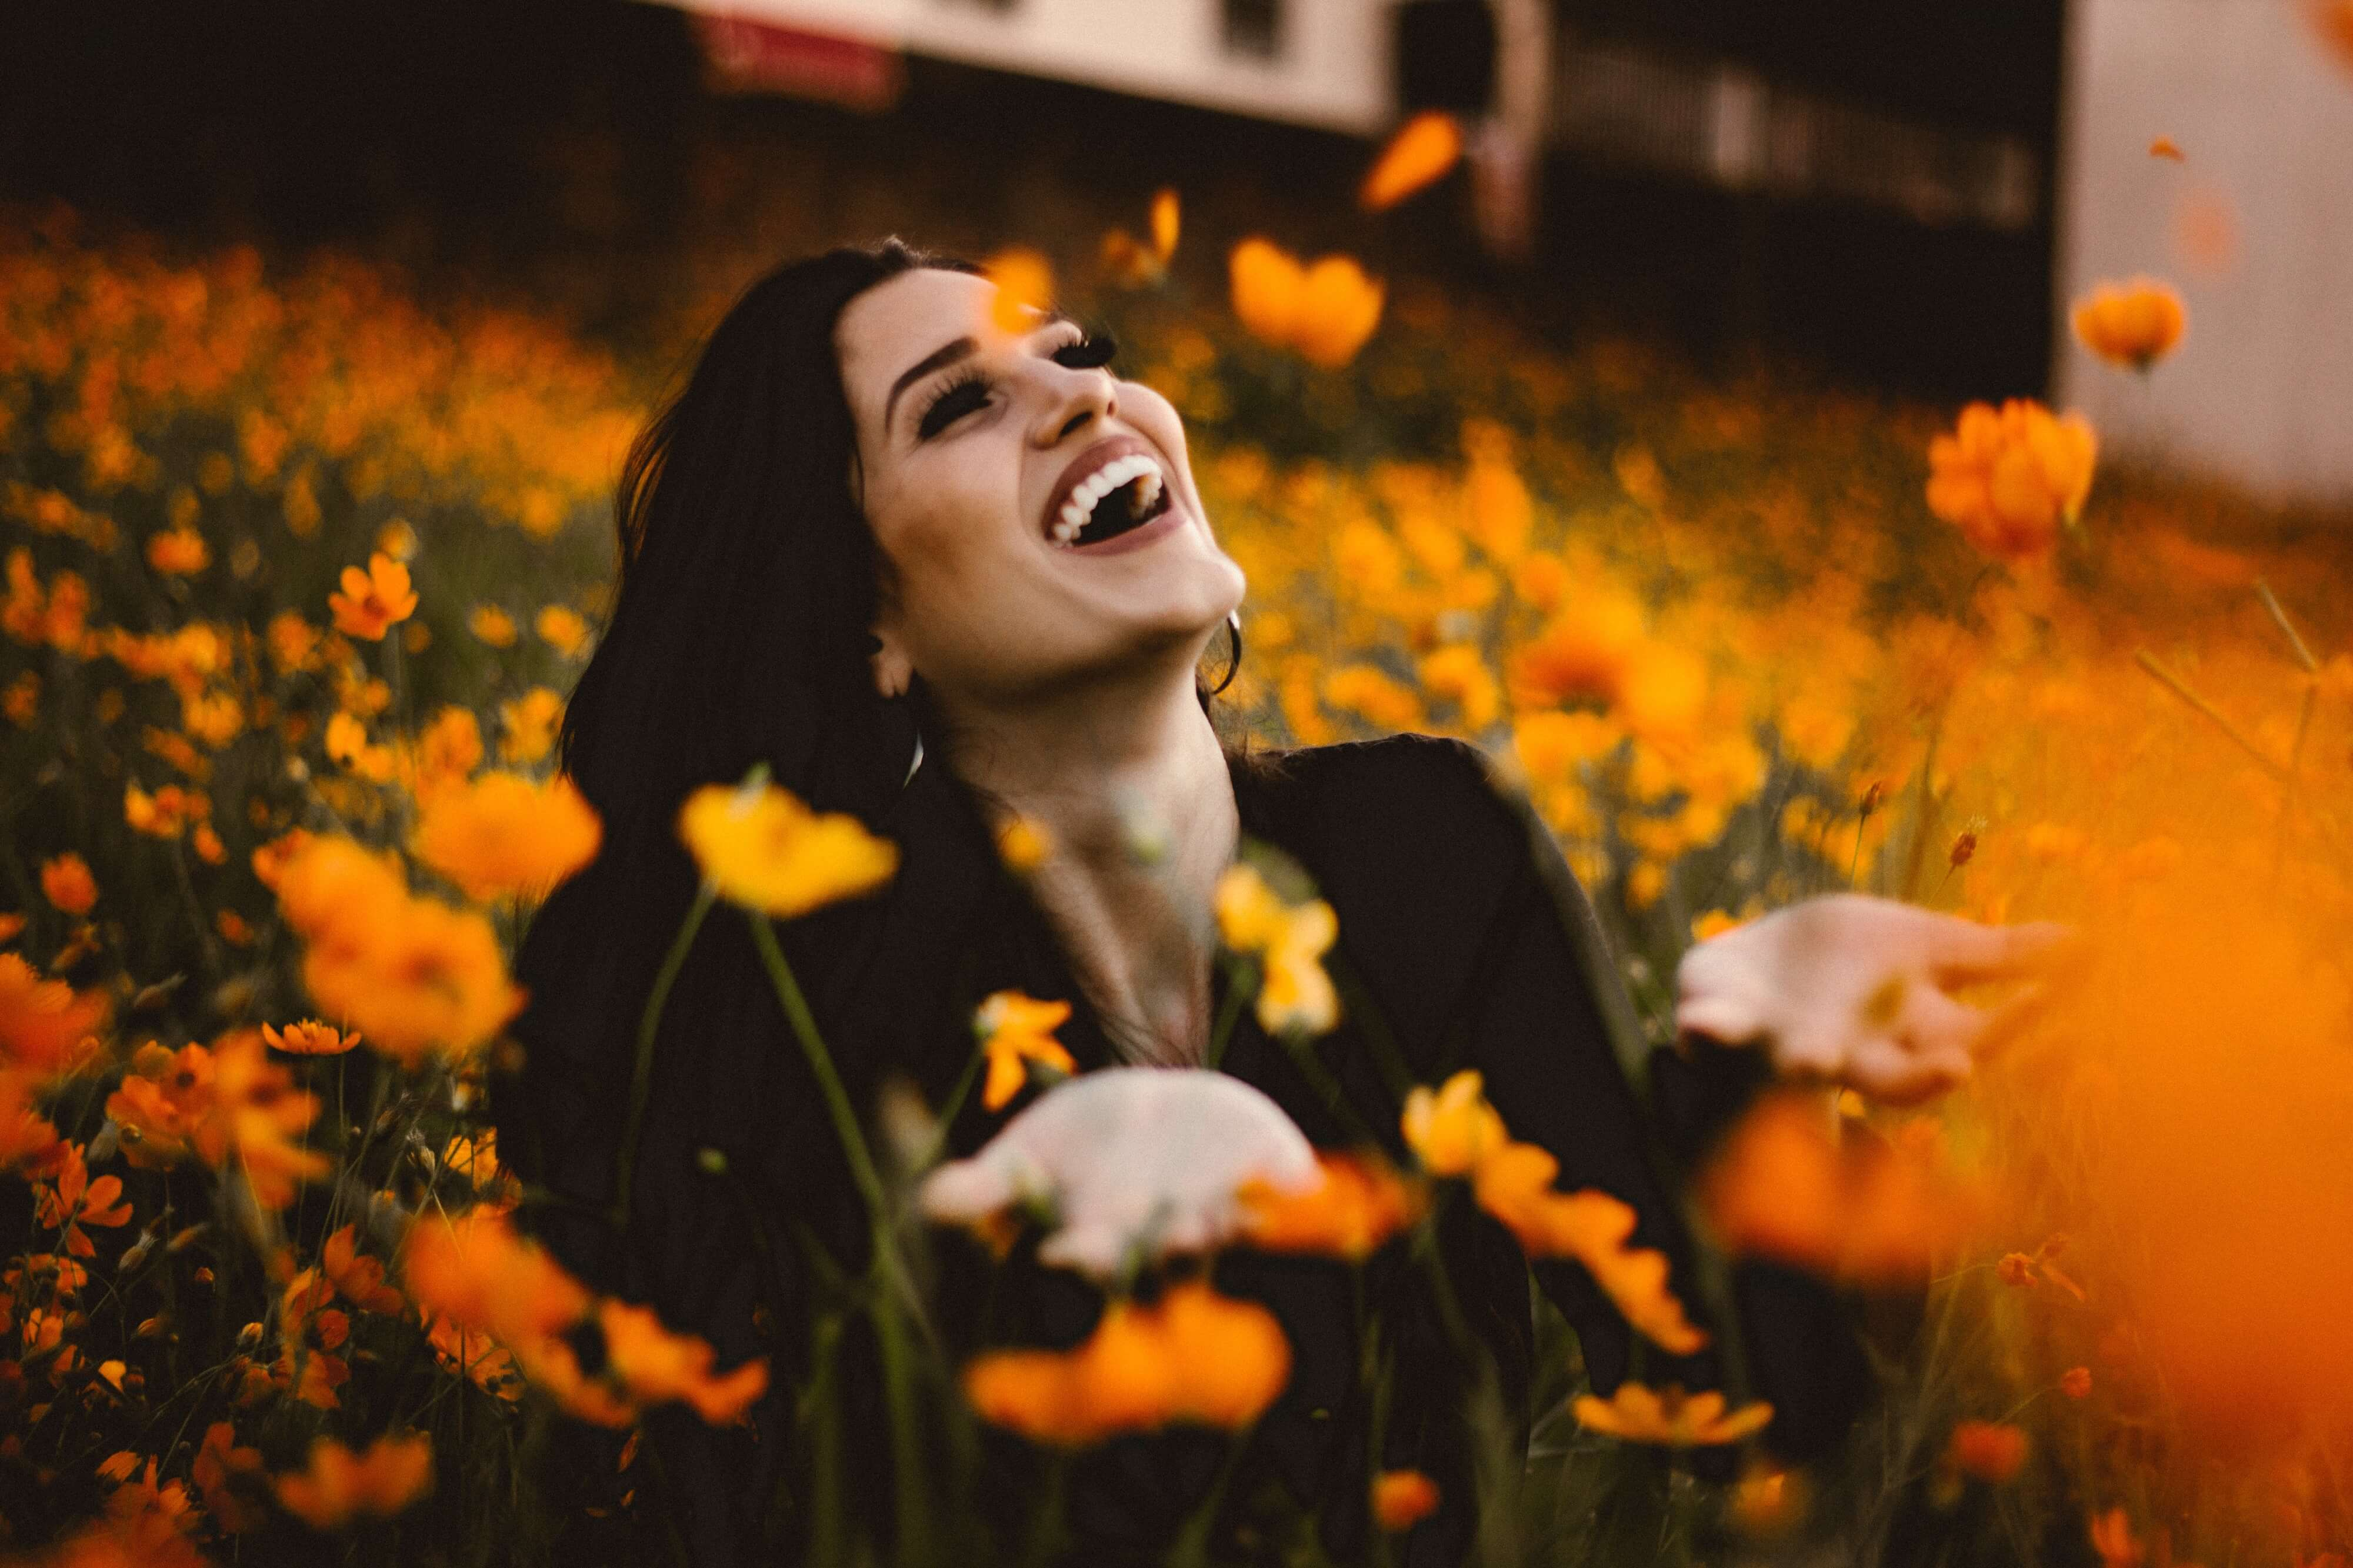 How Flowers Can Impact Human Moods